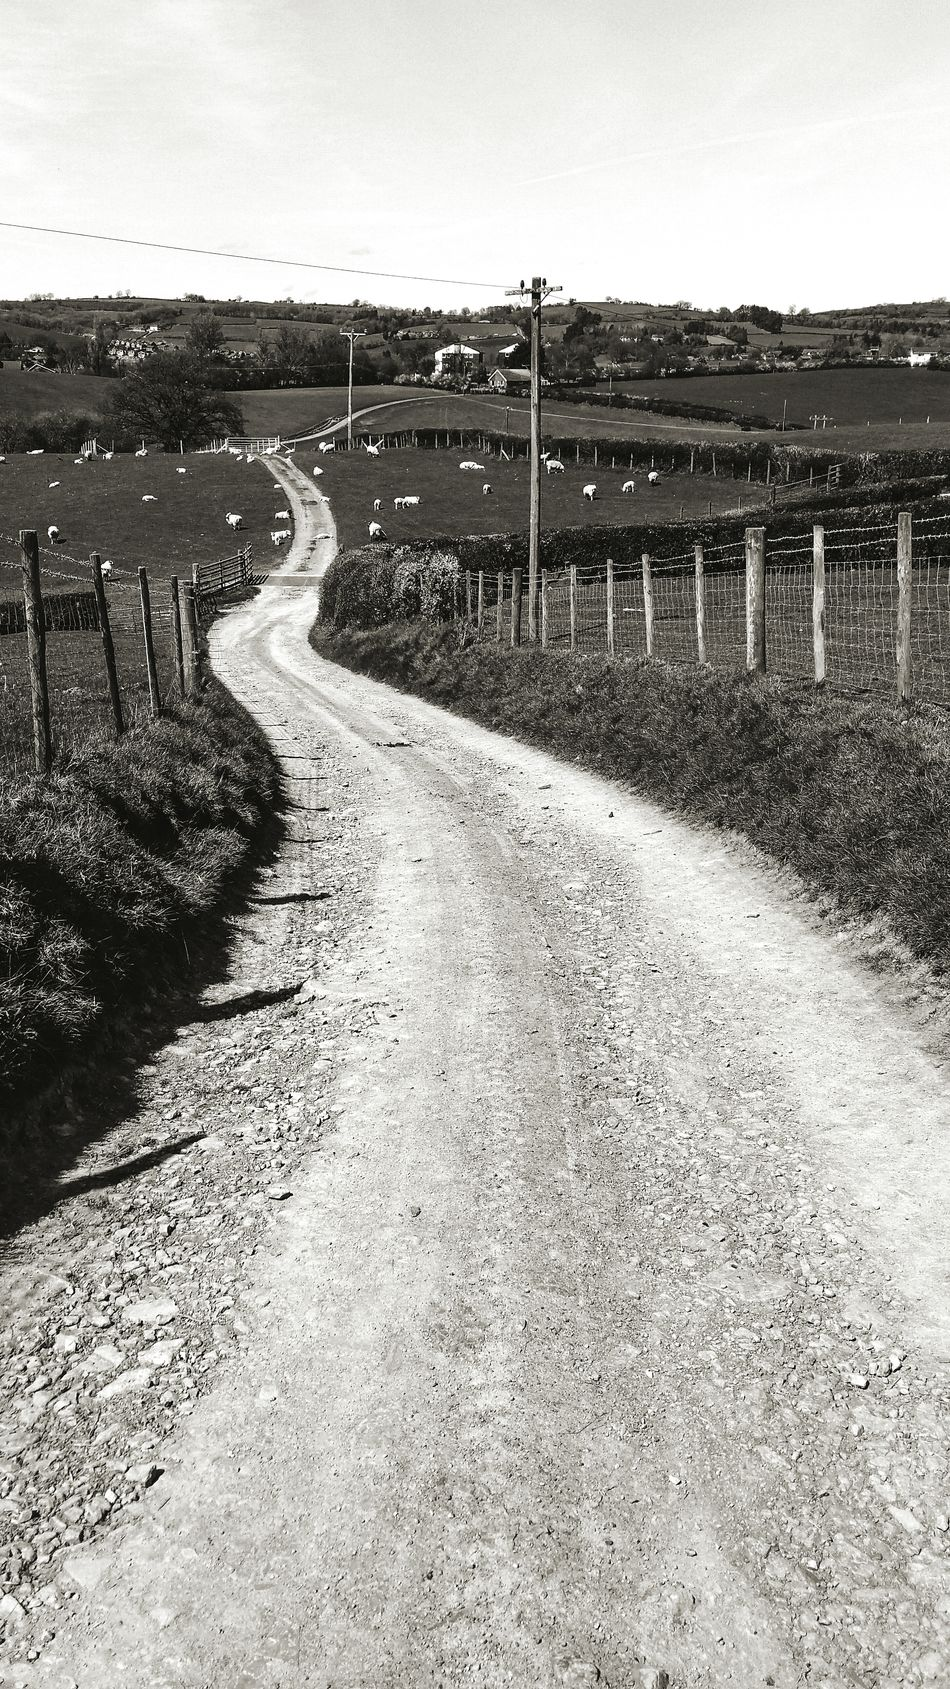 A White Road ... Outdoors Nature Sky Country Road Farmland Black And White Fields Sheep Wales Newtown Powys Landscape Monochrome Contrasts Way Forward Hills Road Less Traveled Countryside Agriculture Farm Walking Britain Inviting Road Meandering